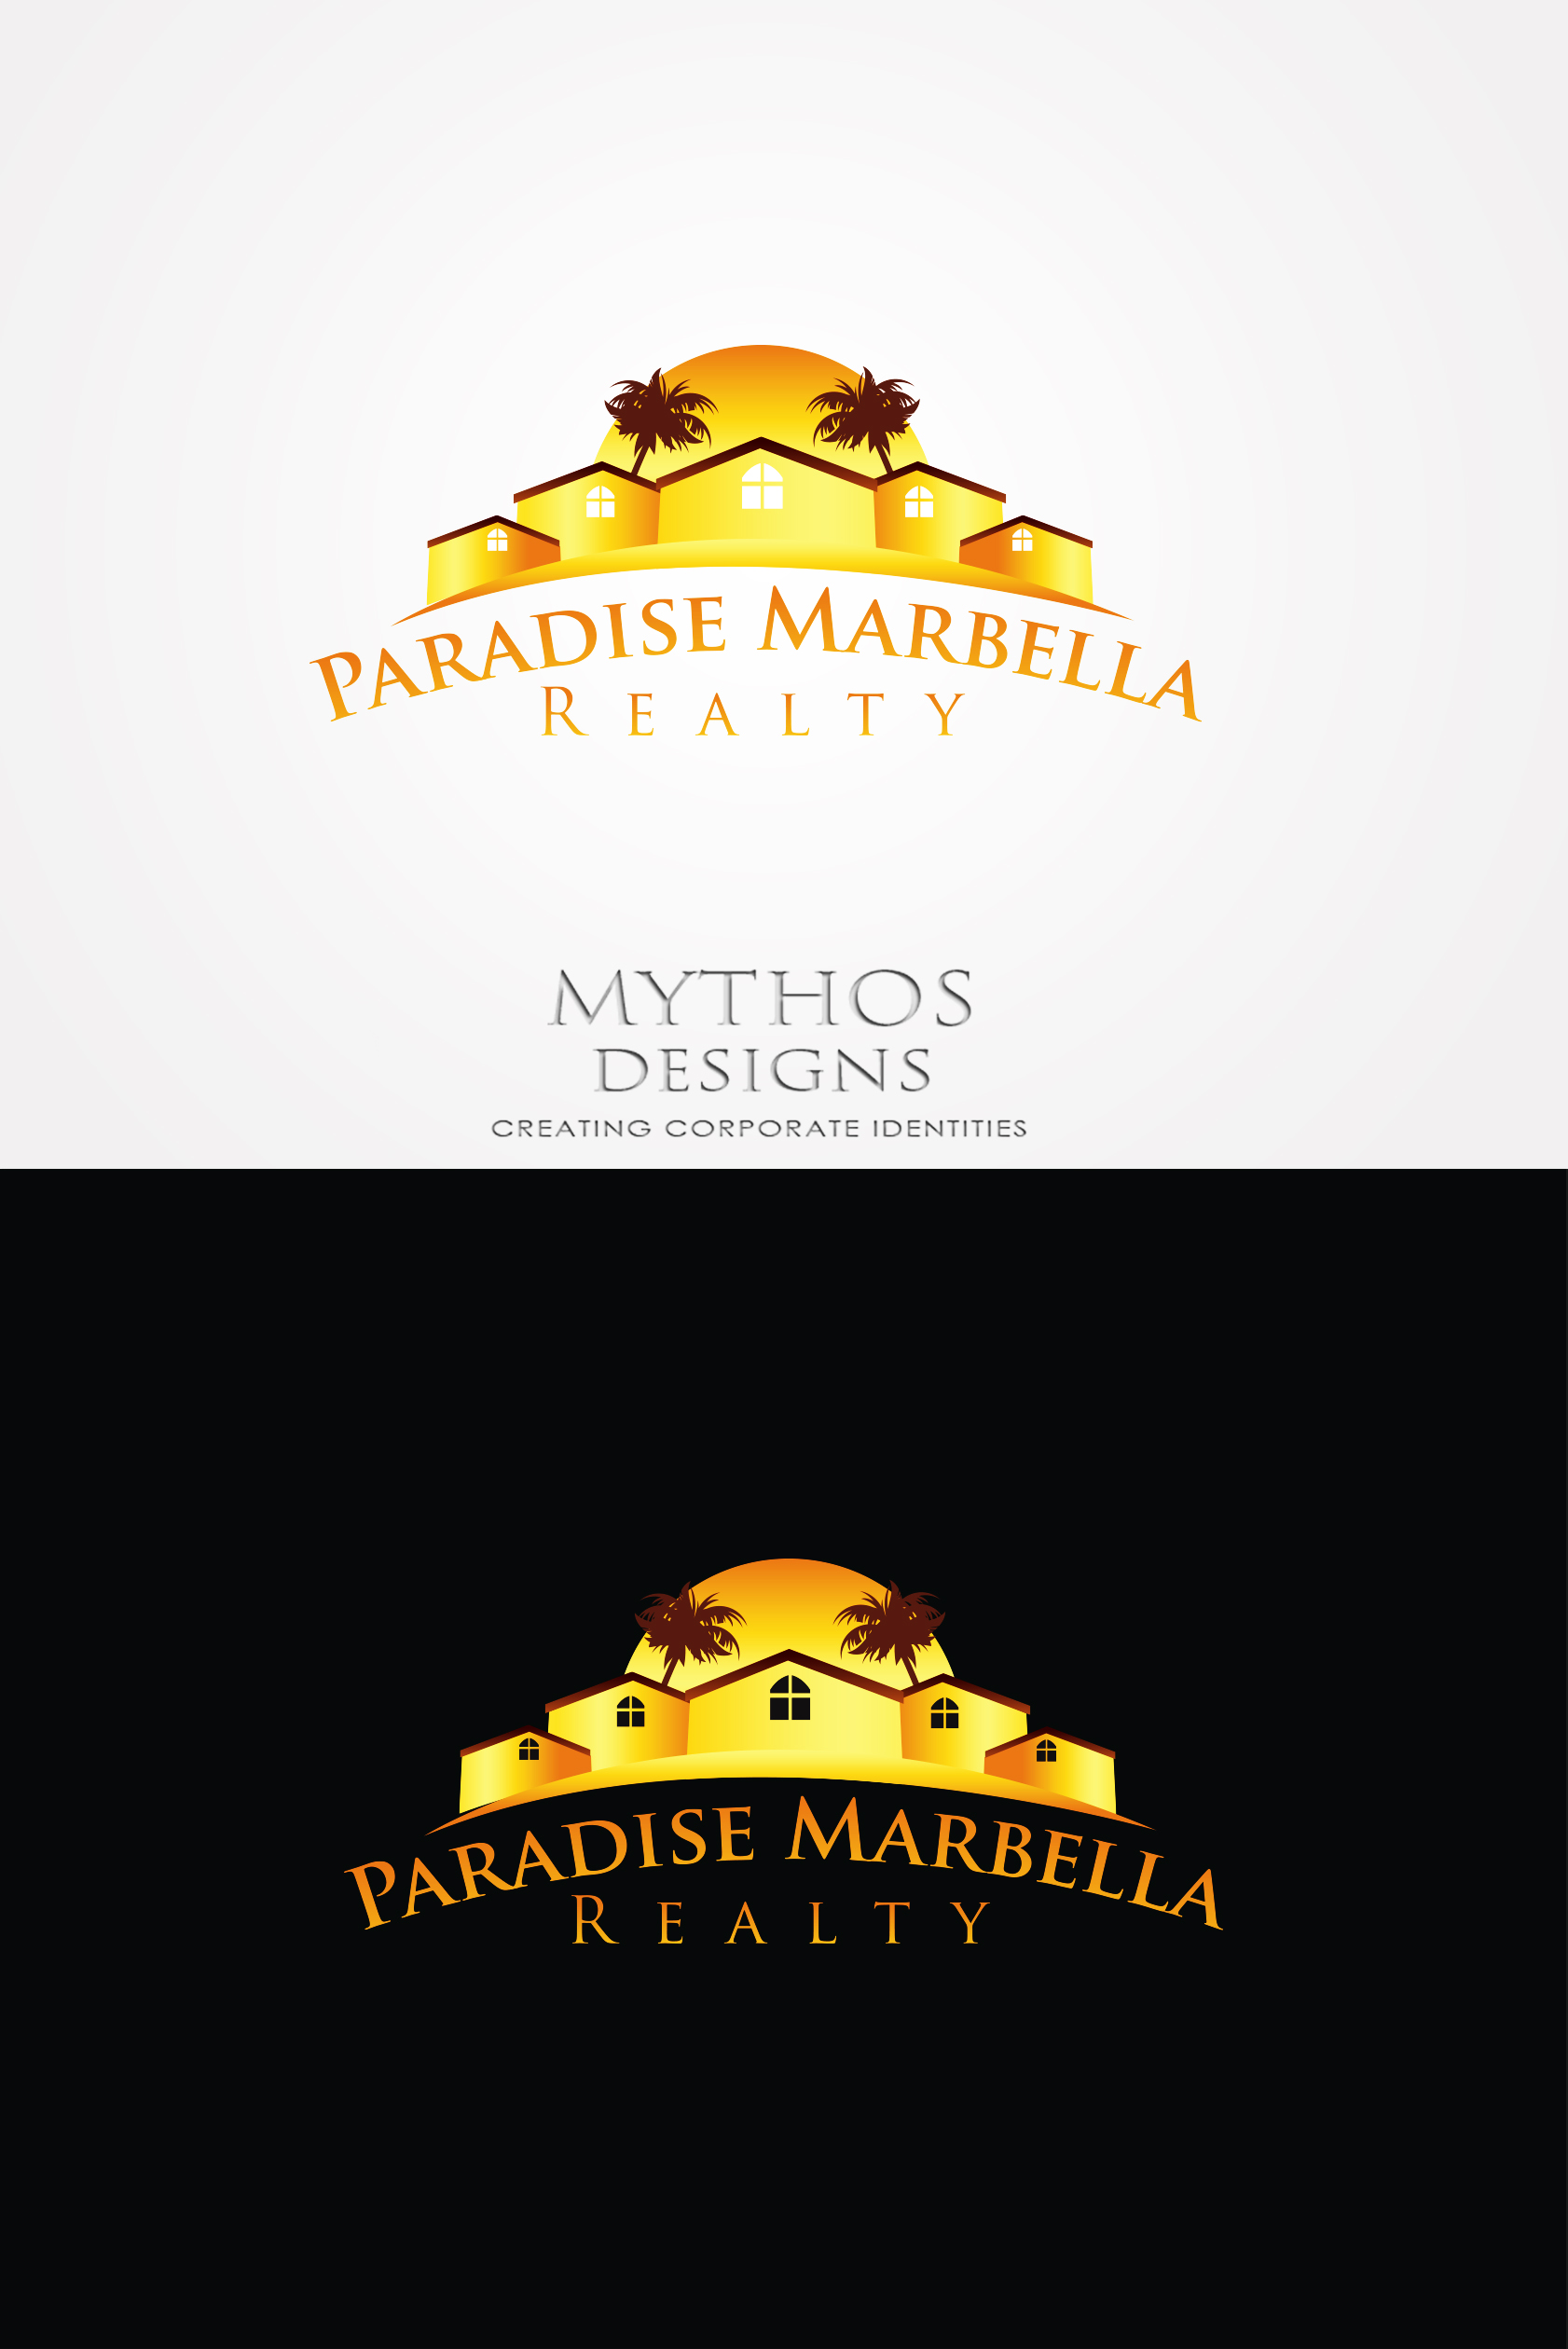 Logo Design by Mythos Designs - Entry No. 63 in the Logo Design Contest Captivating Logo Design for Paradise Marbella Realty.